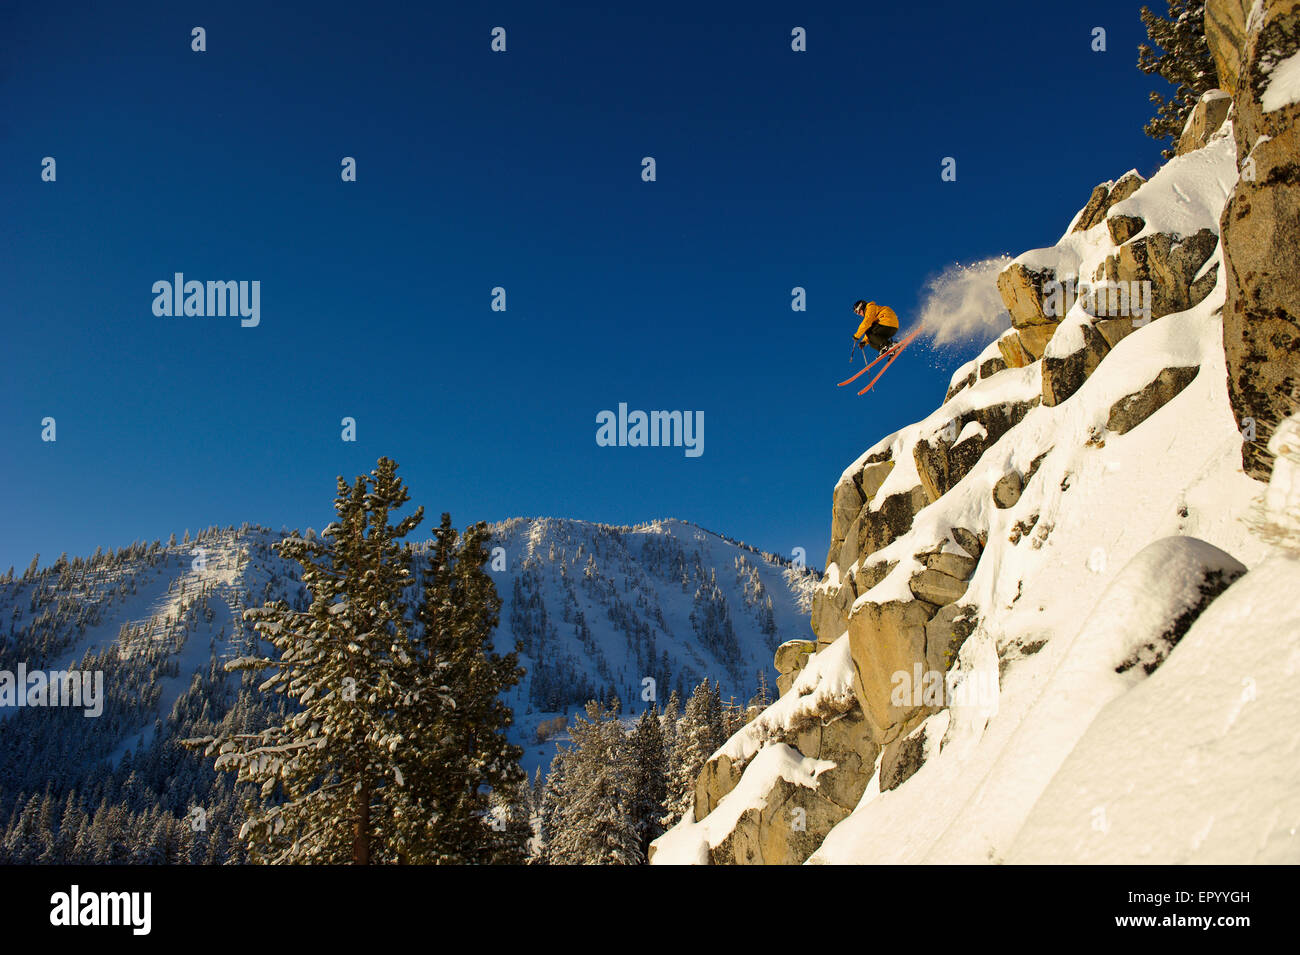 Big air cliff jump on skis with Mt. Rose Ski Tahoe in the background. Stock Photo